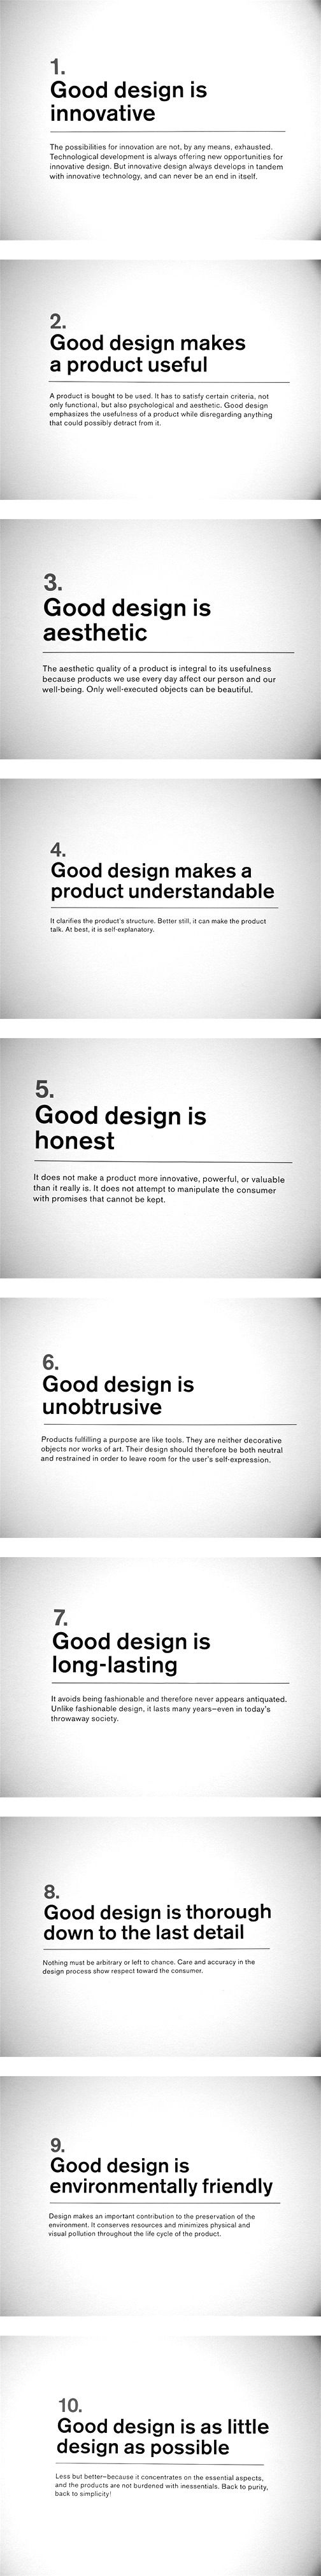 Dieter Ramms 10 principles of good design